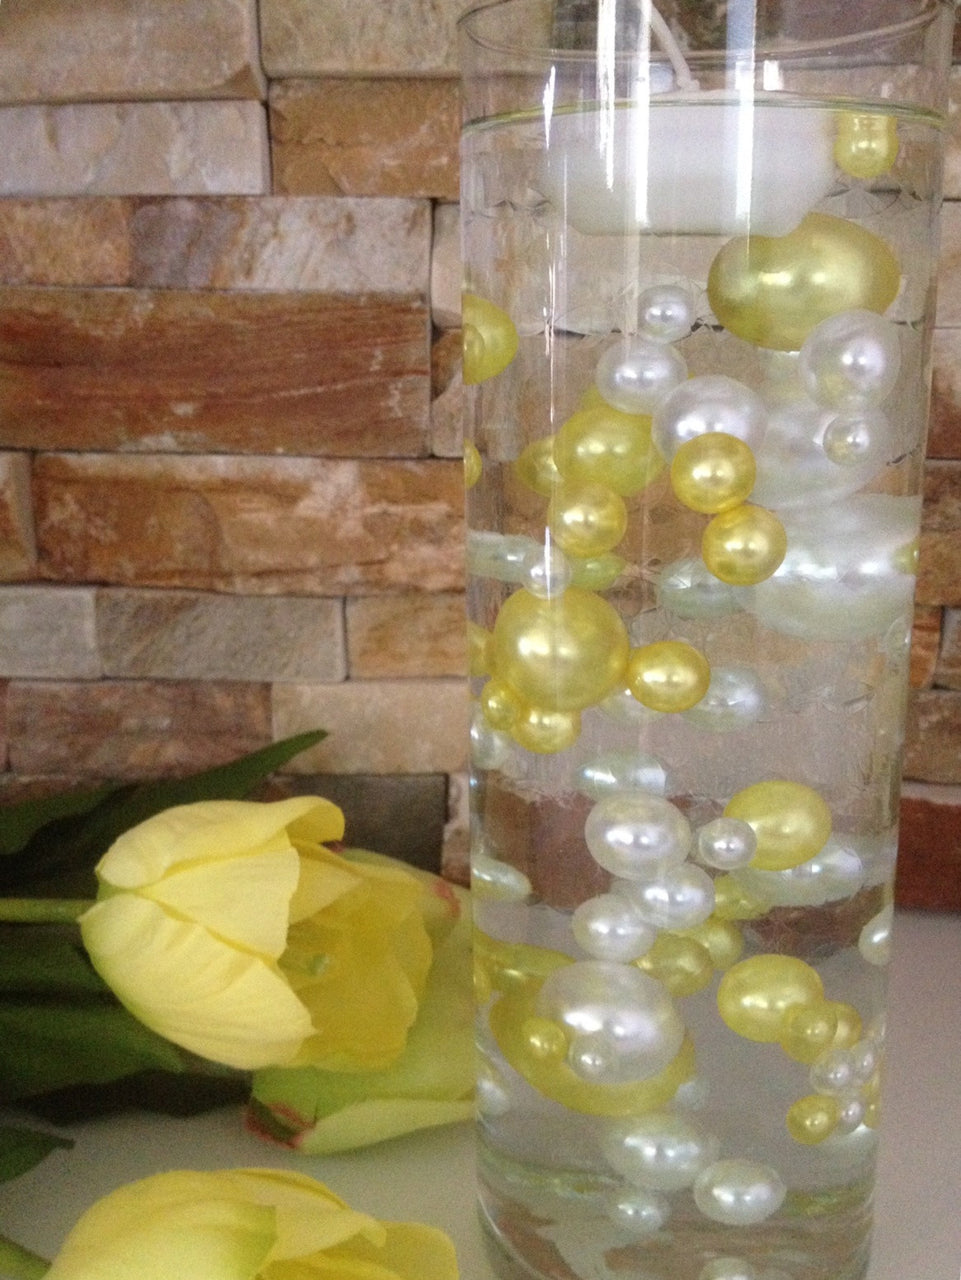 Copy of 80 Yellow/White Pearls, Jumbo & Mix Size Pearls, No Hole Pearls For Vase Fillers, Crafts, DIY Floating Pearls